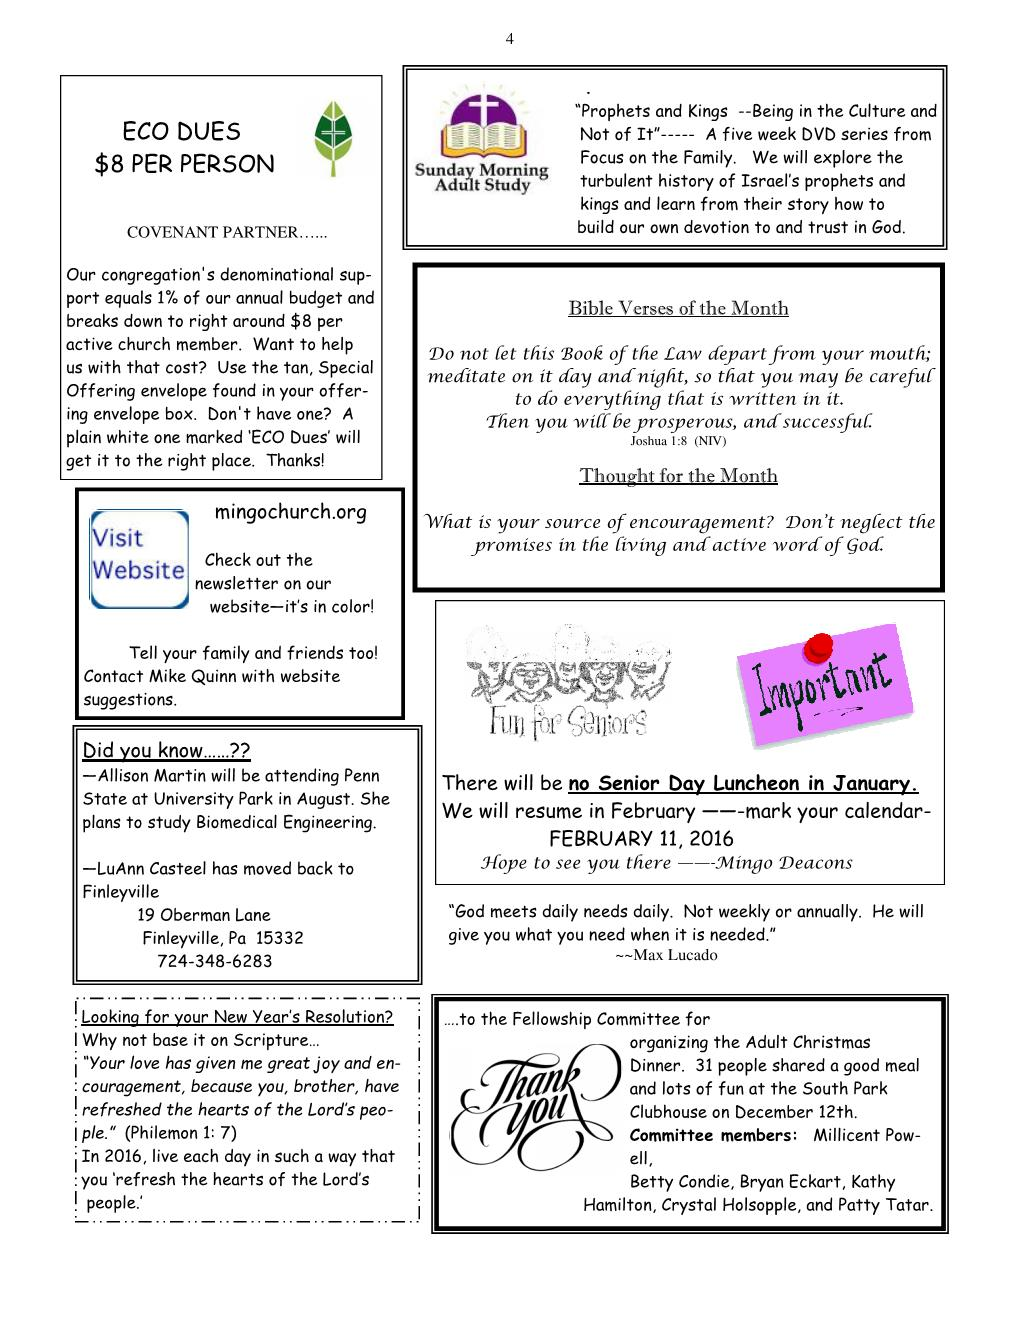 JANUARY NEWSLETTER Page 004.jpg